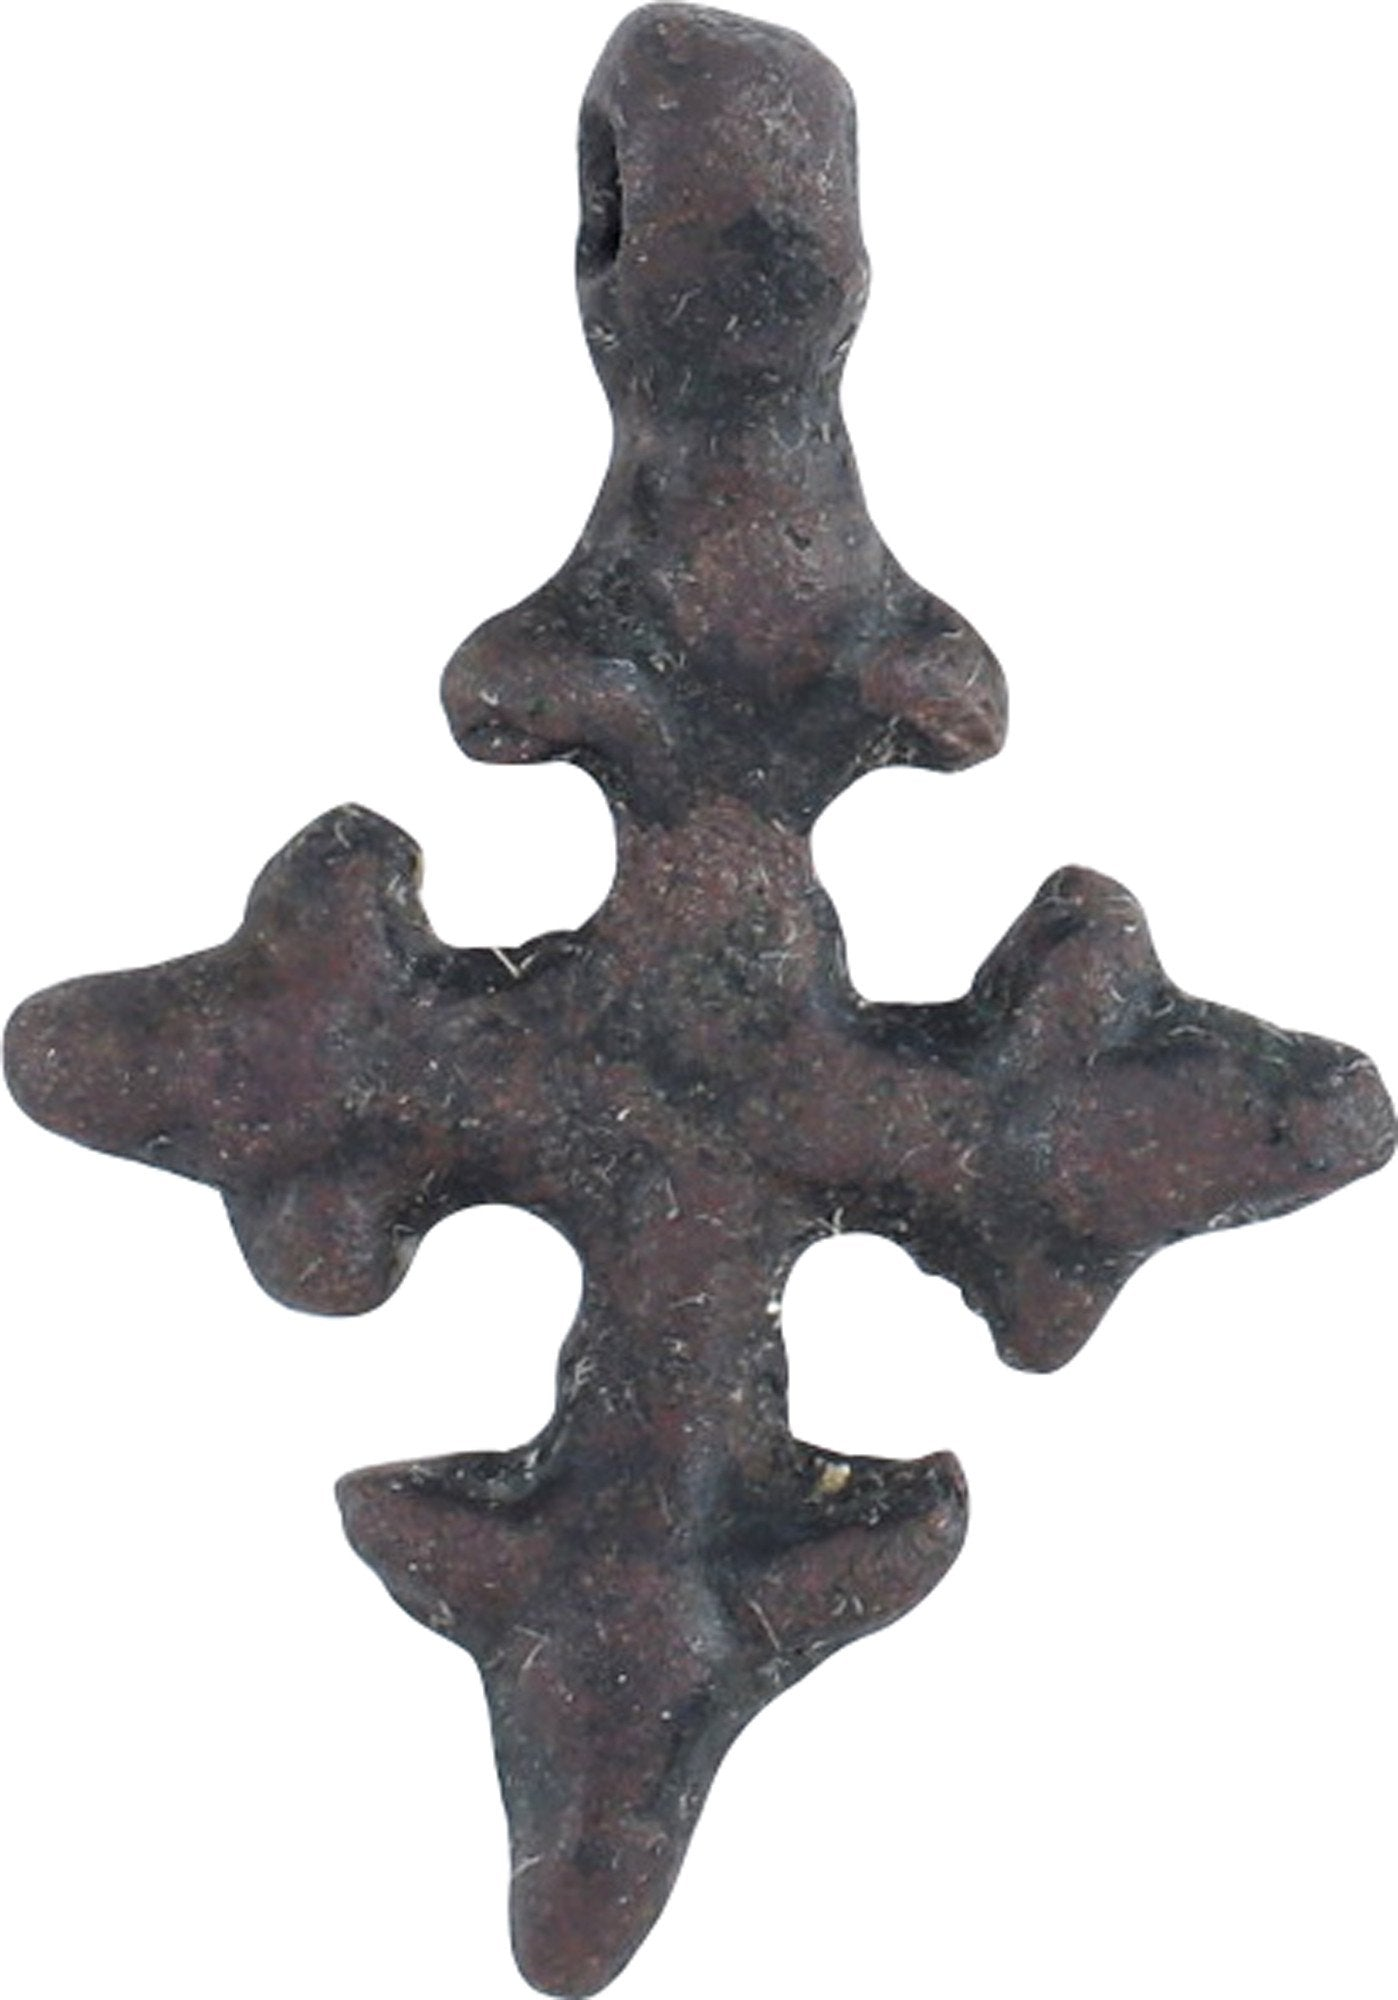 MEDIEVAL EUROPEAN CROSS 14th-15th CENTURY - Fagan Arms